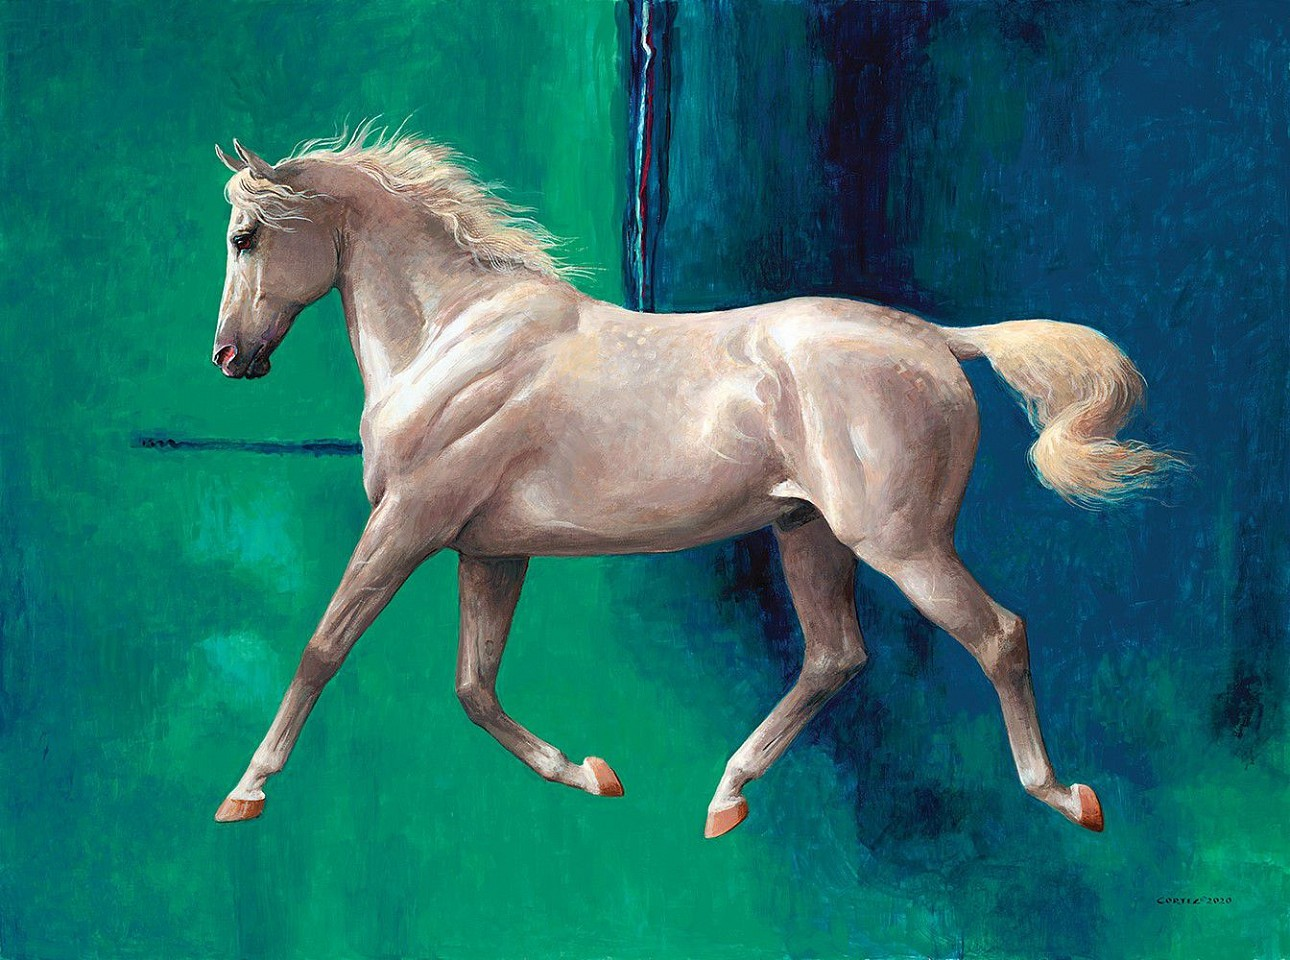 Jenness Cortez ,   The Whitest Horse Blue #1  ,  2020     acrylic on mahogany panel ,  30 x 40 in. (76.2 x 101.6 cm)     JC200201